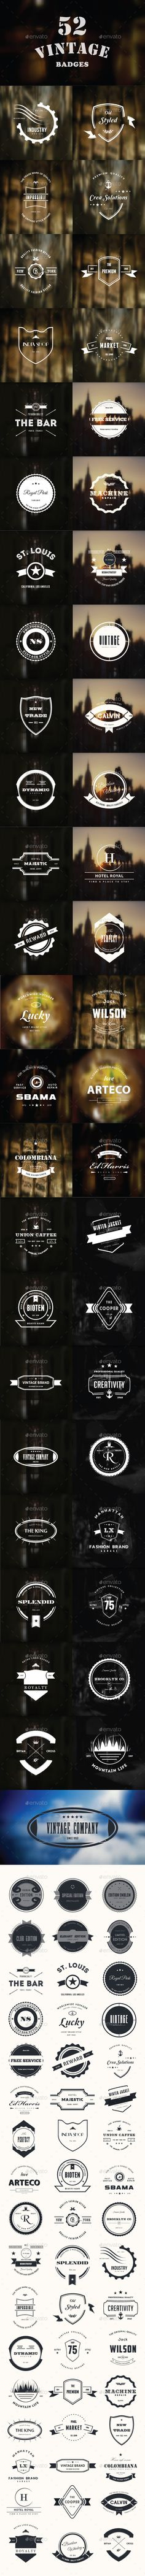 52 Retro Vintage Insignias & Logo-Badges-Bundle | #insignias #logo #badges…